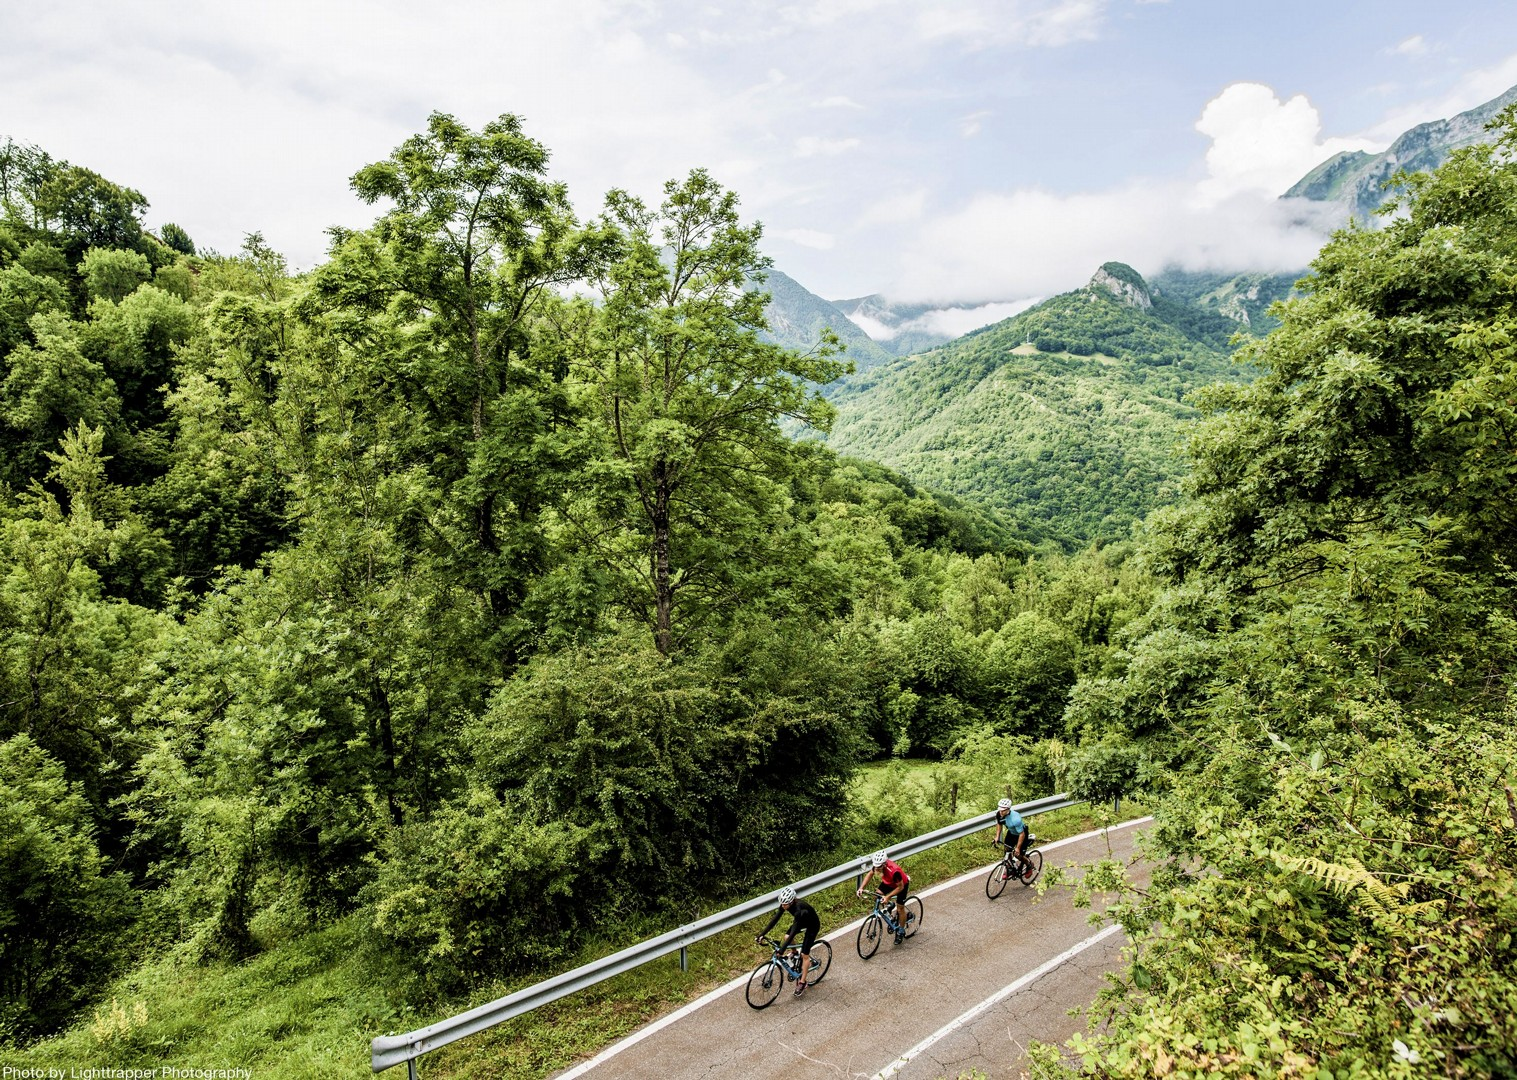 day3_northern_spain_059.jpg - Northern Spain  - Vuelta Classics - Guided Road Cycling Holiday - Road Cycling